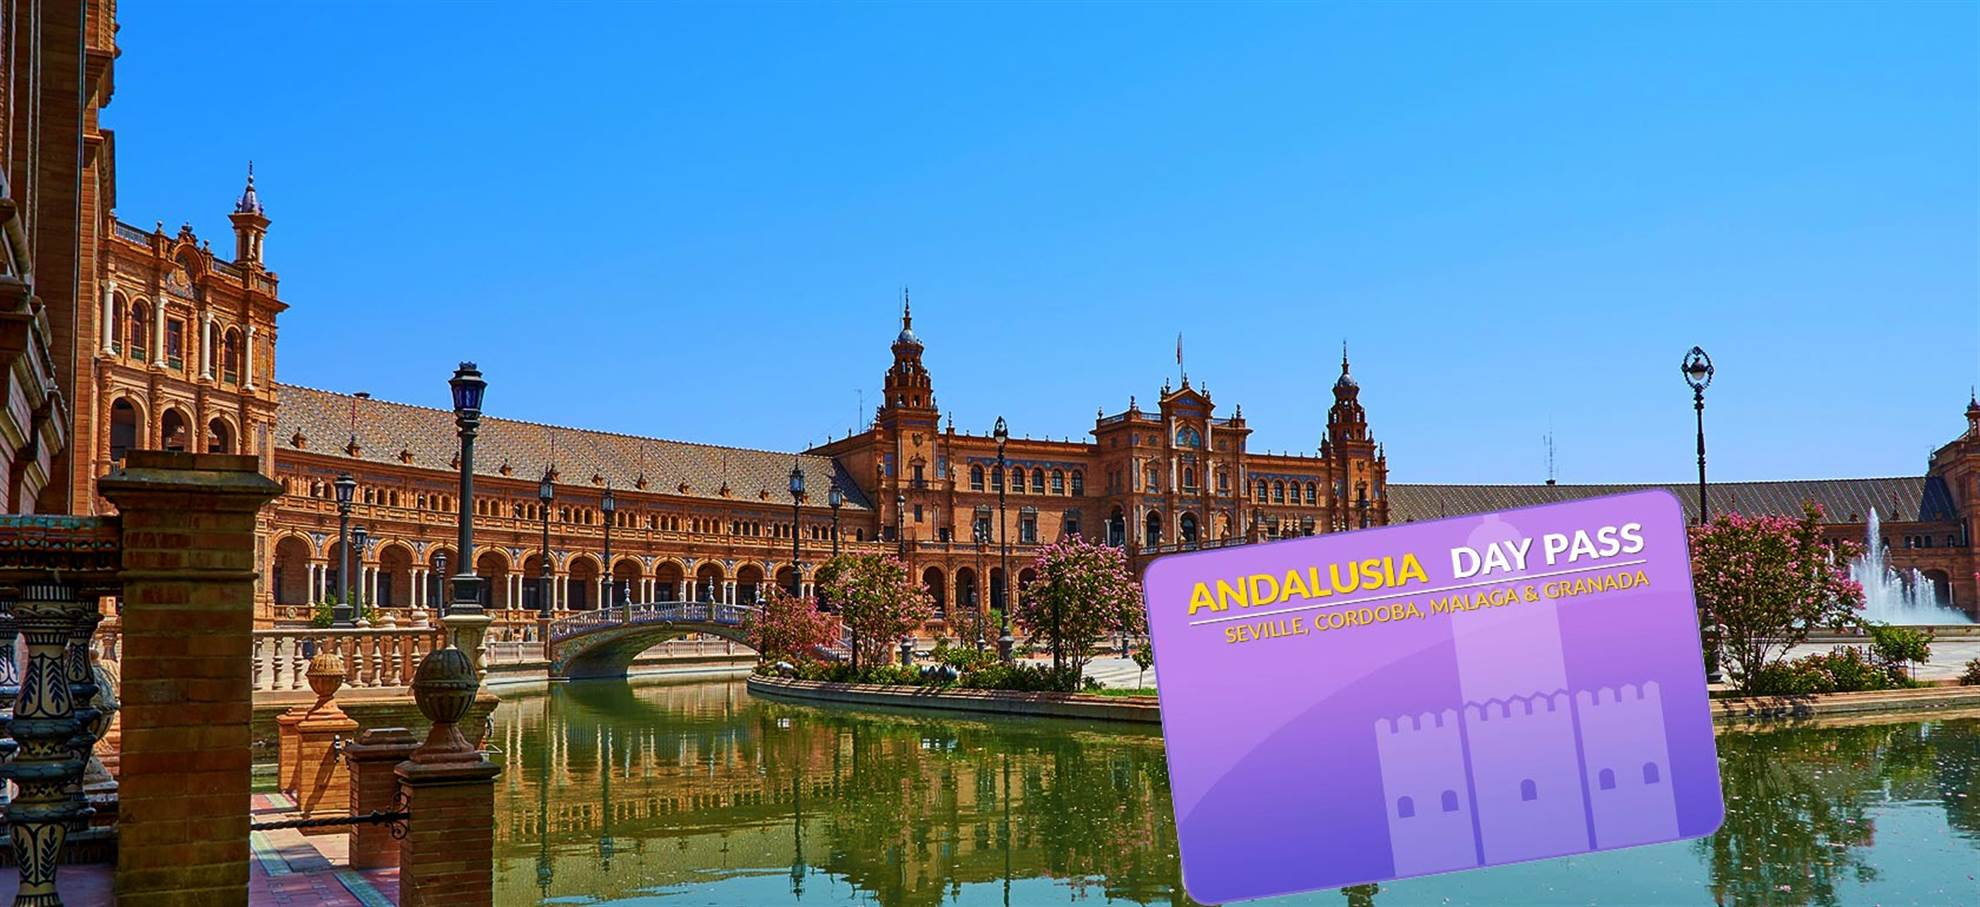 Andalusia Day Pass to Seville/Cordoba/Malaga/Granada